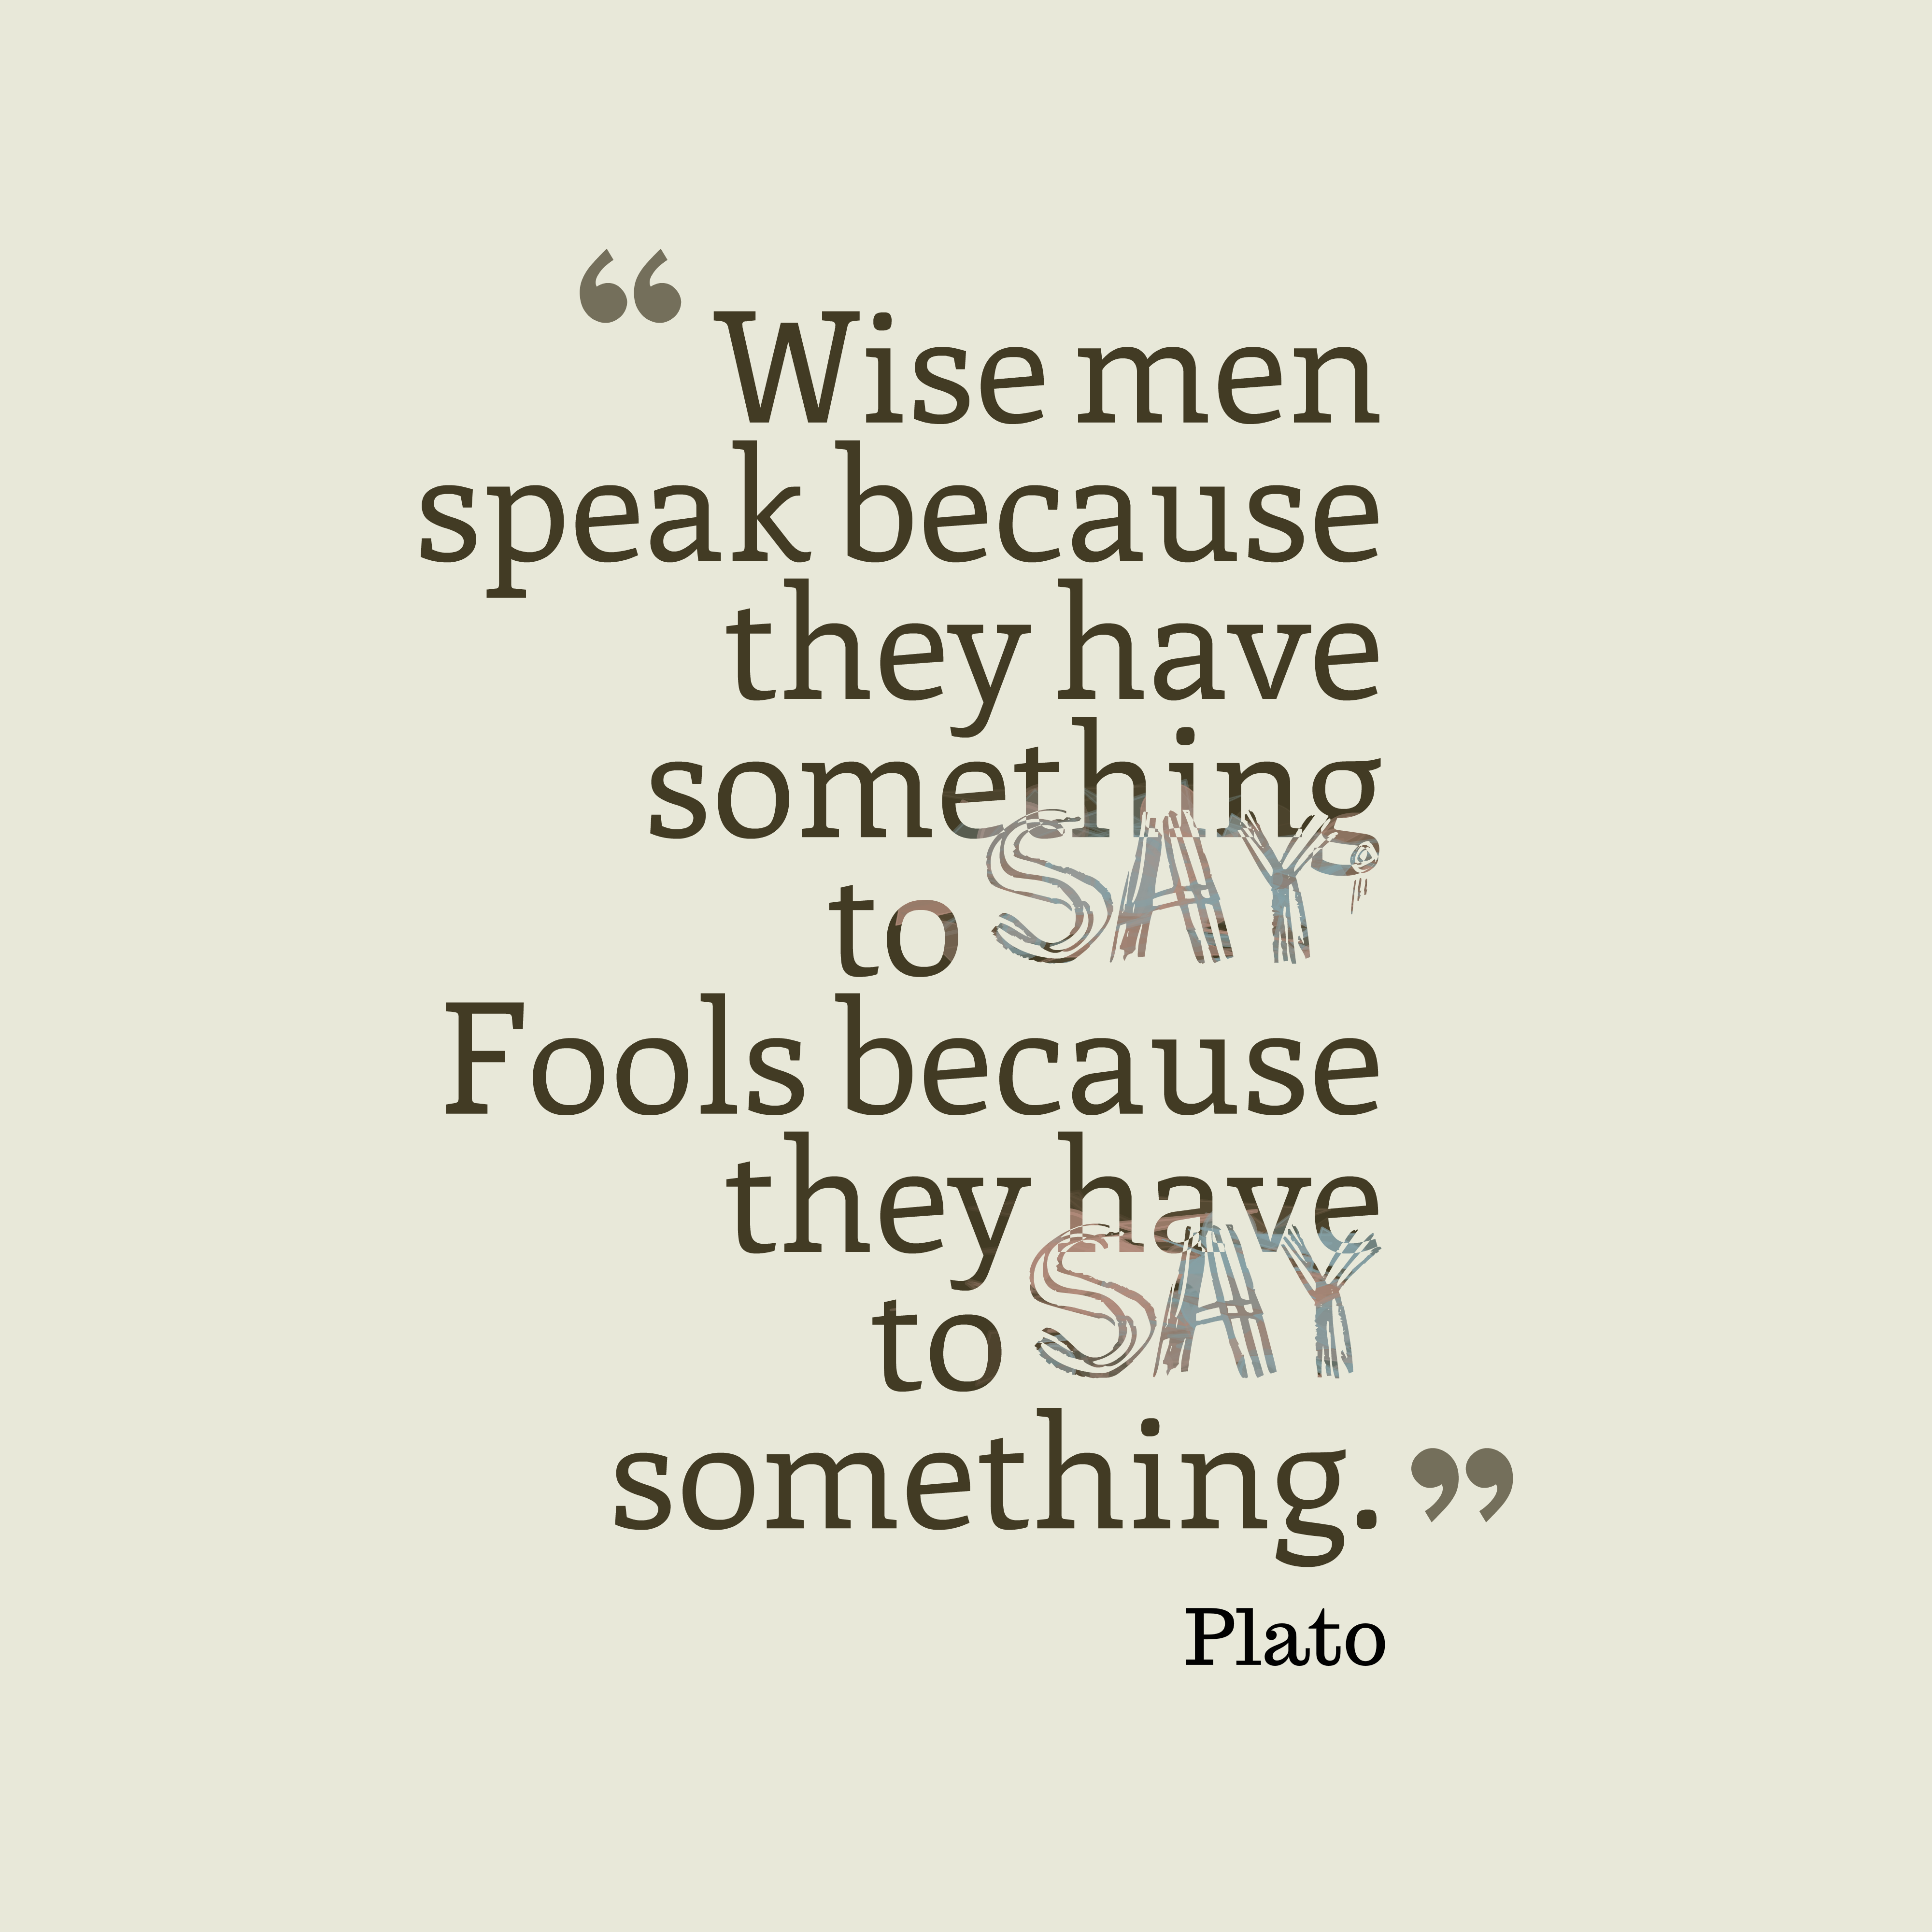 Quotes image of Wise men speak because they have something to say; Fools because they have to say something.